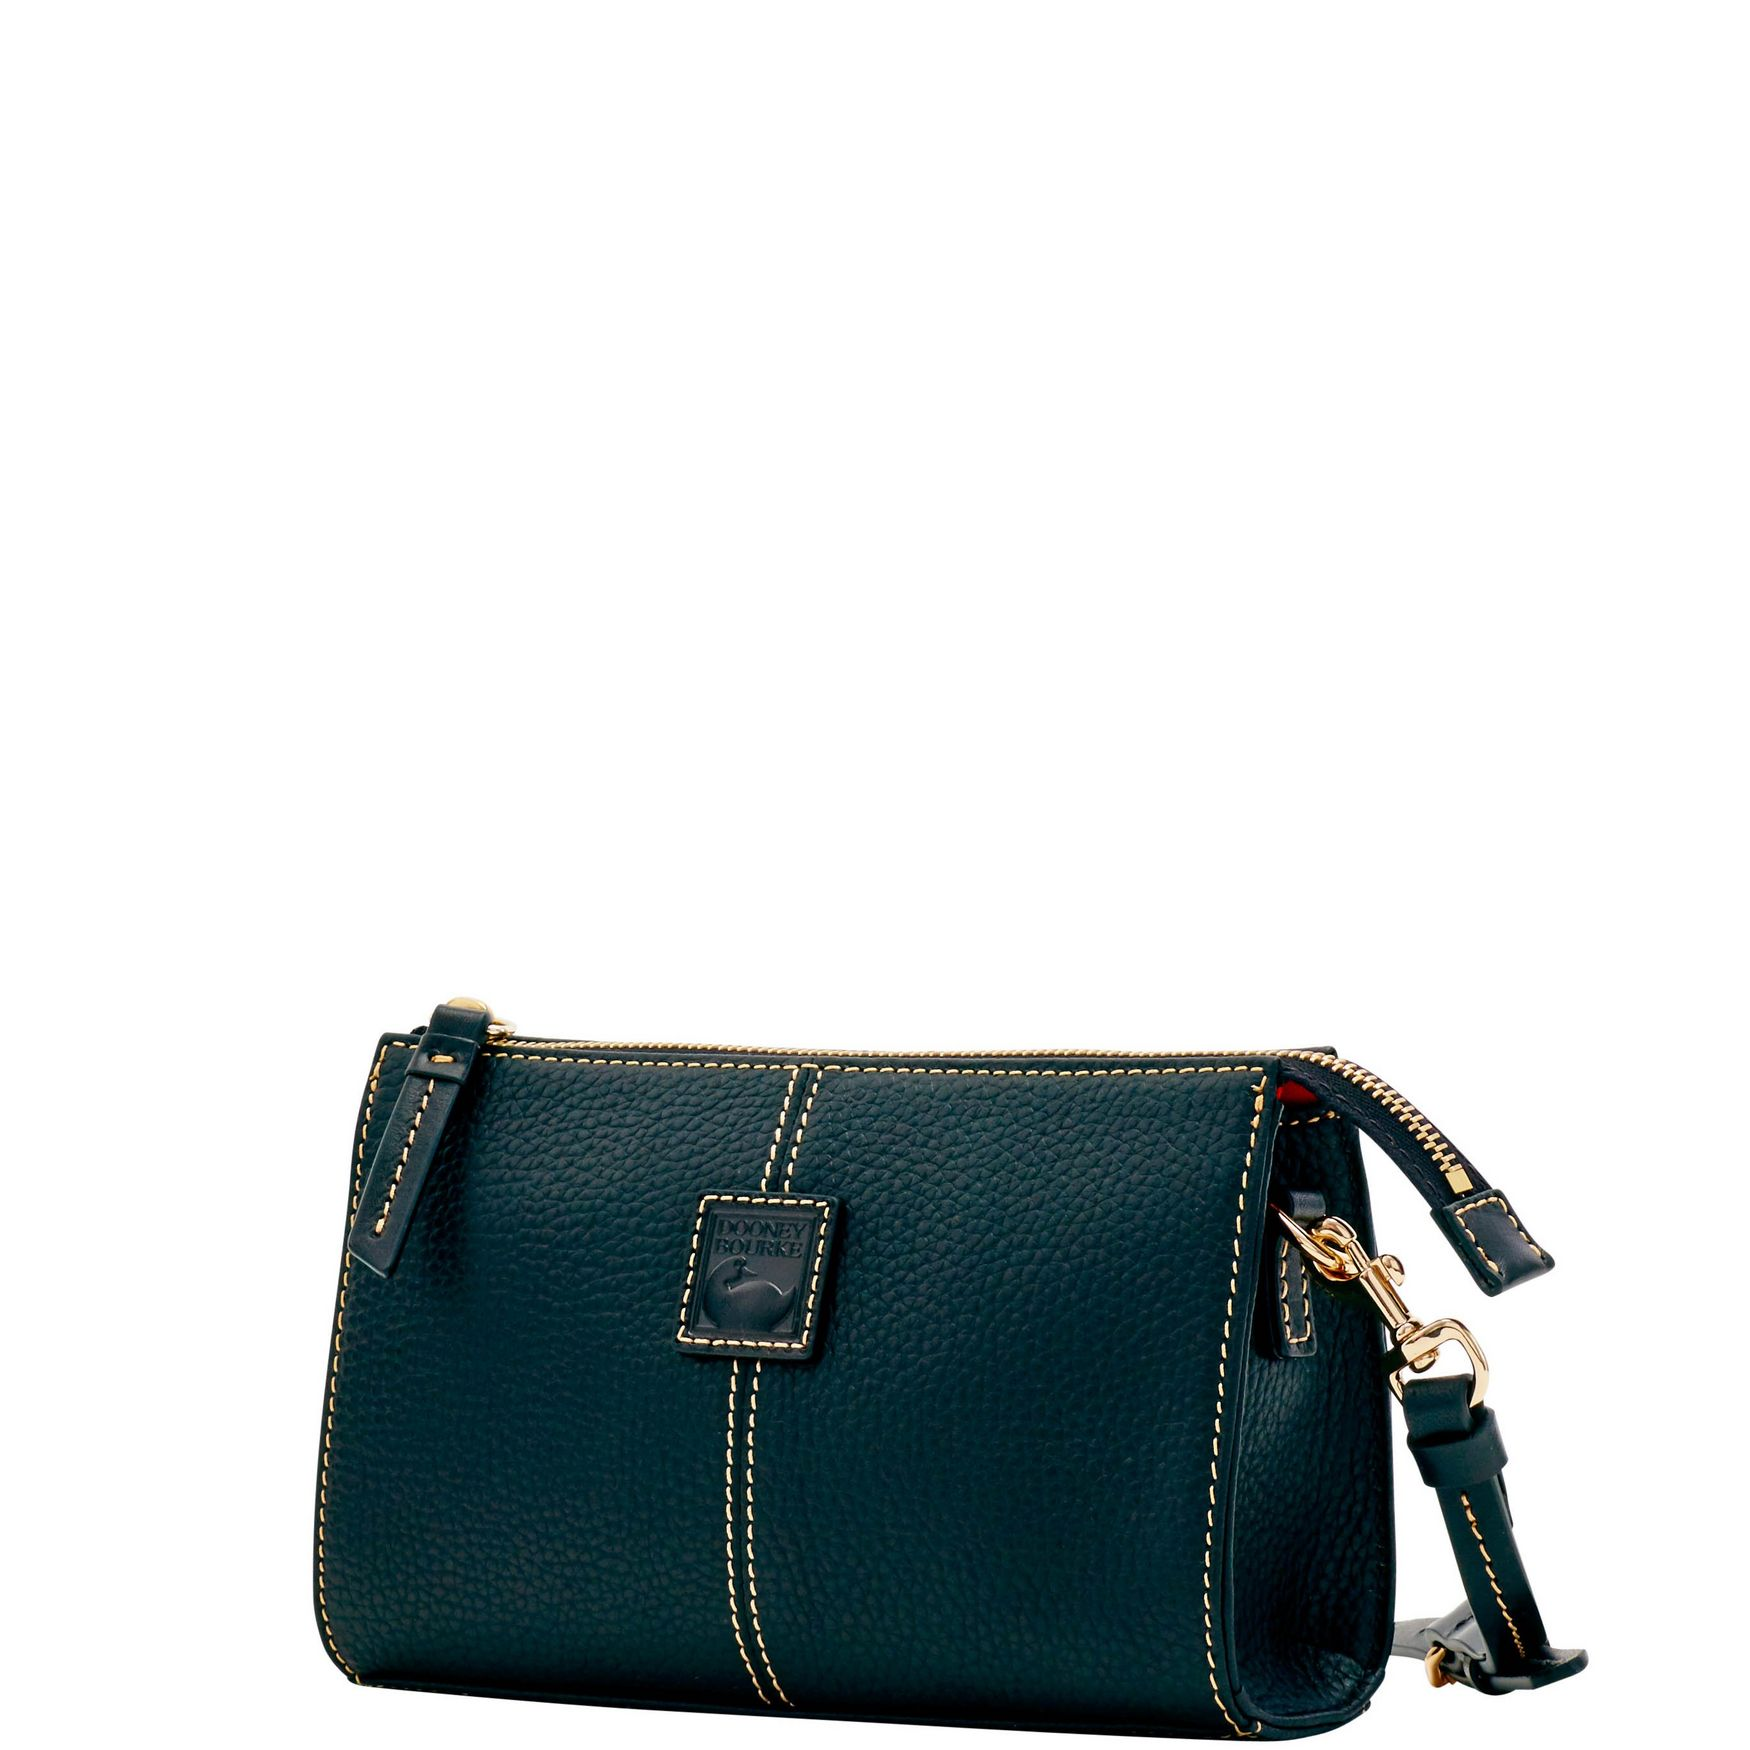 Dooney-amp-Bourke-Pebble-Grain-Small-Janine-Crossbody-Shoulder-Bag thumbnail 8